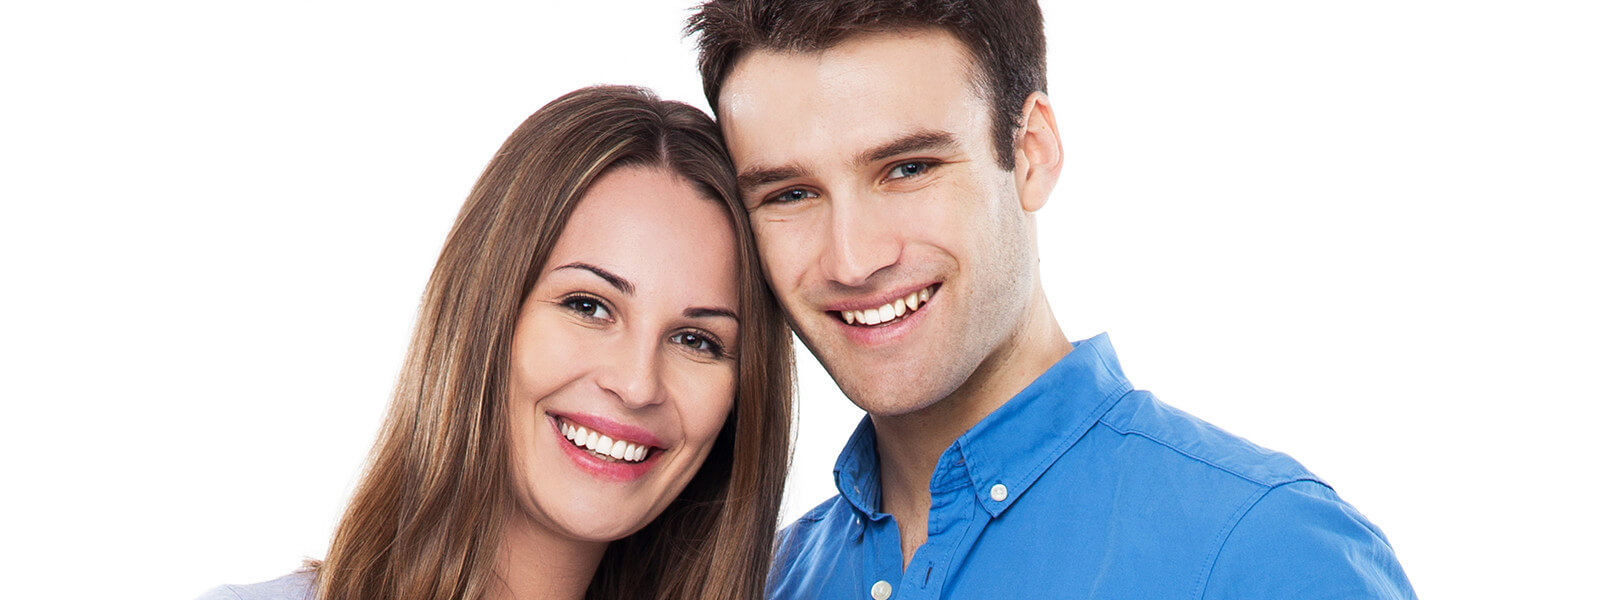 Preventive Dentistry in Prairieville LA